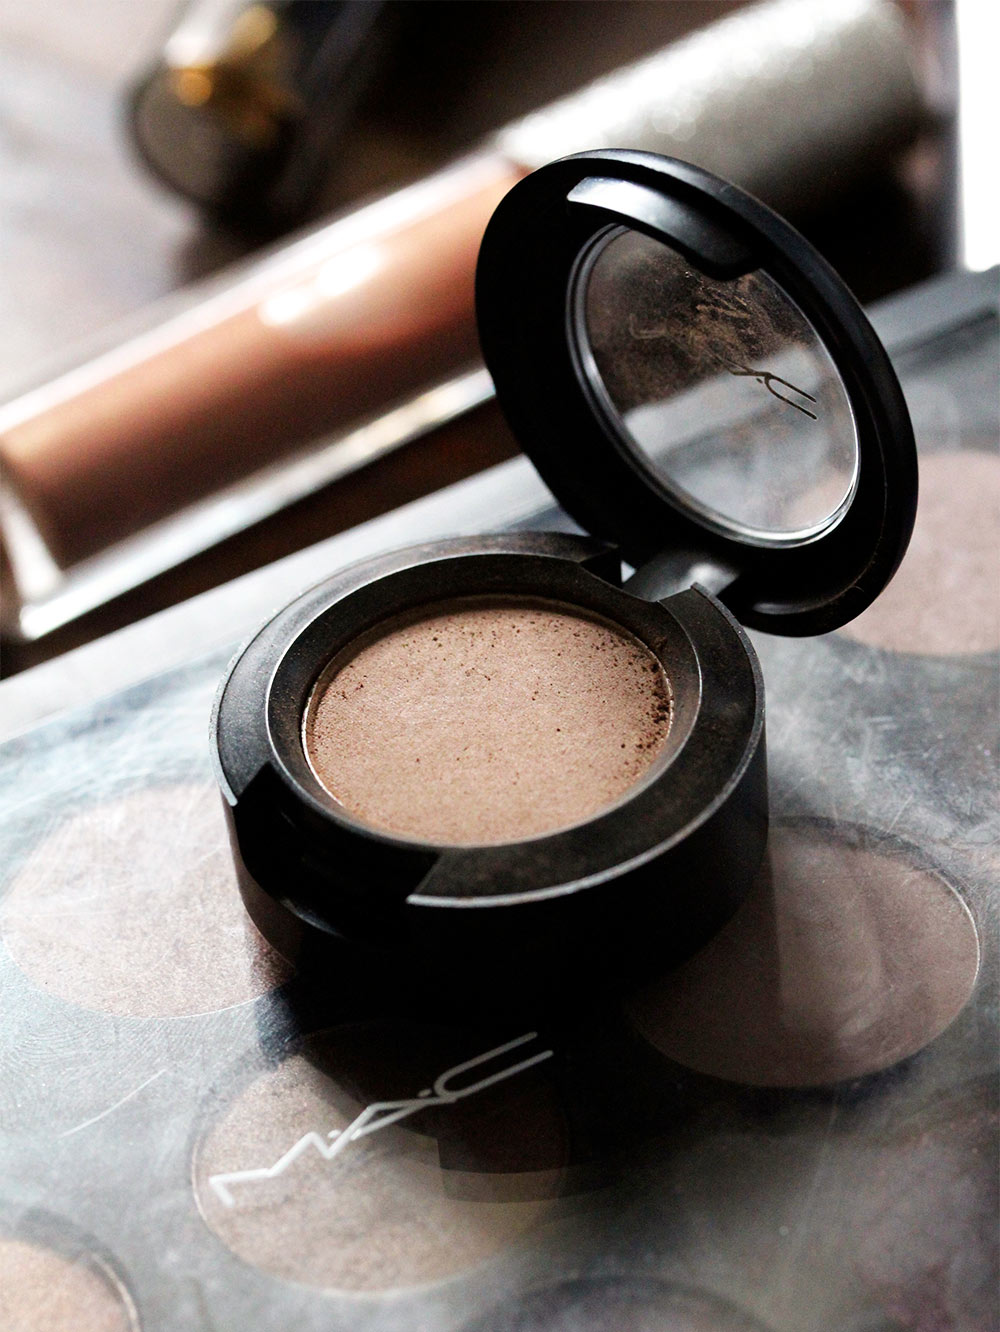 Mac unsung heroes cork eye shadow makeup and beauty blog mac cork eye shadow an unsung makeup hero altavistaventures